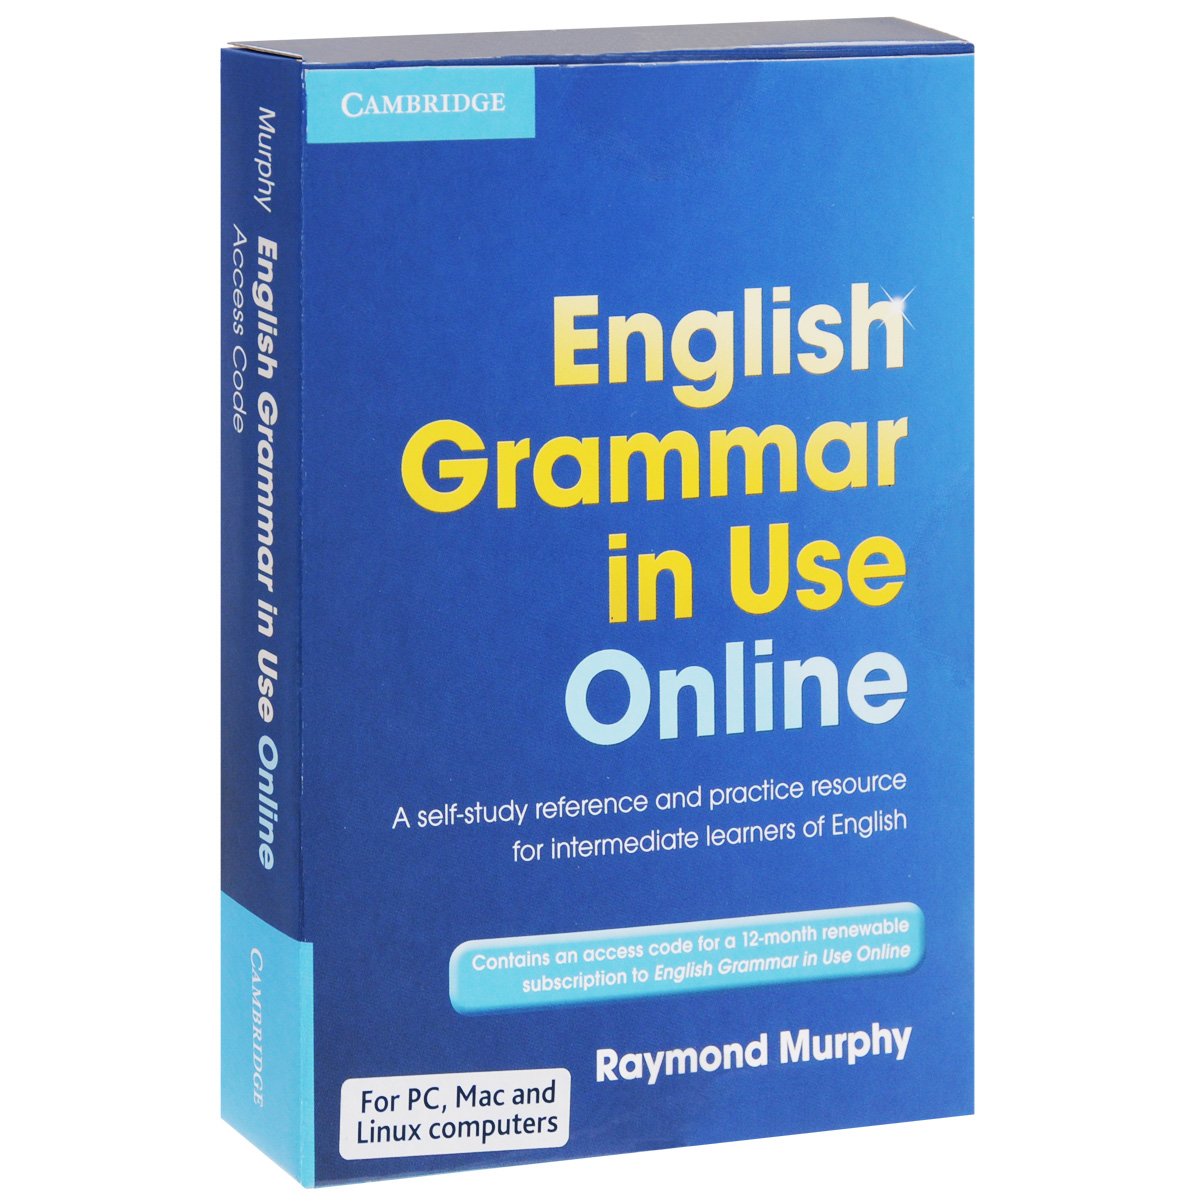 English Grammar in Use Online: Access Code: A Self-Study Reference And Practice Resource for Intermediate Learners of English metal name plate engraving machine for batch number marking